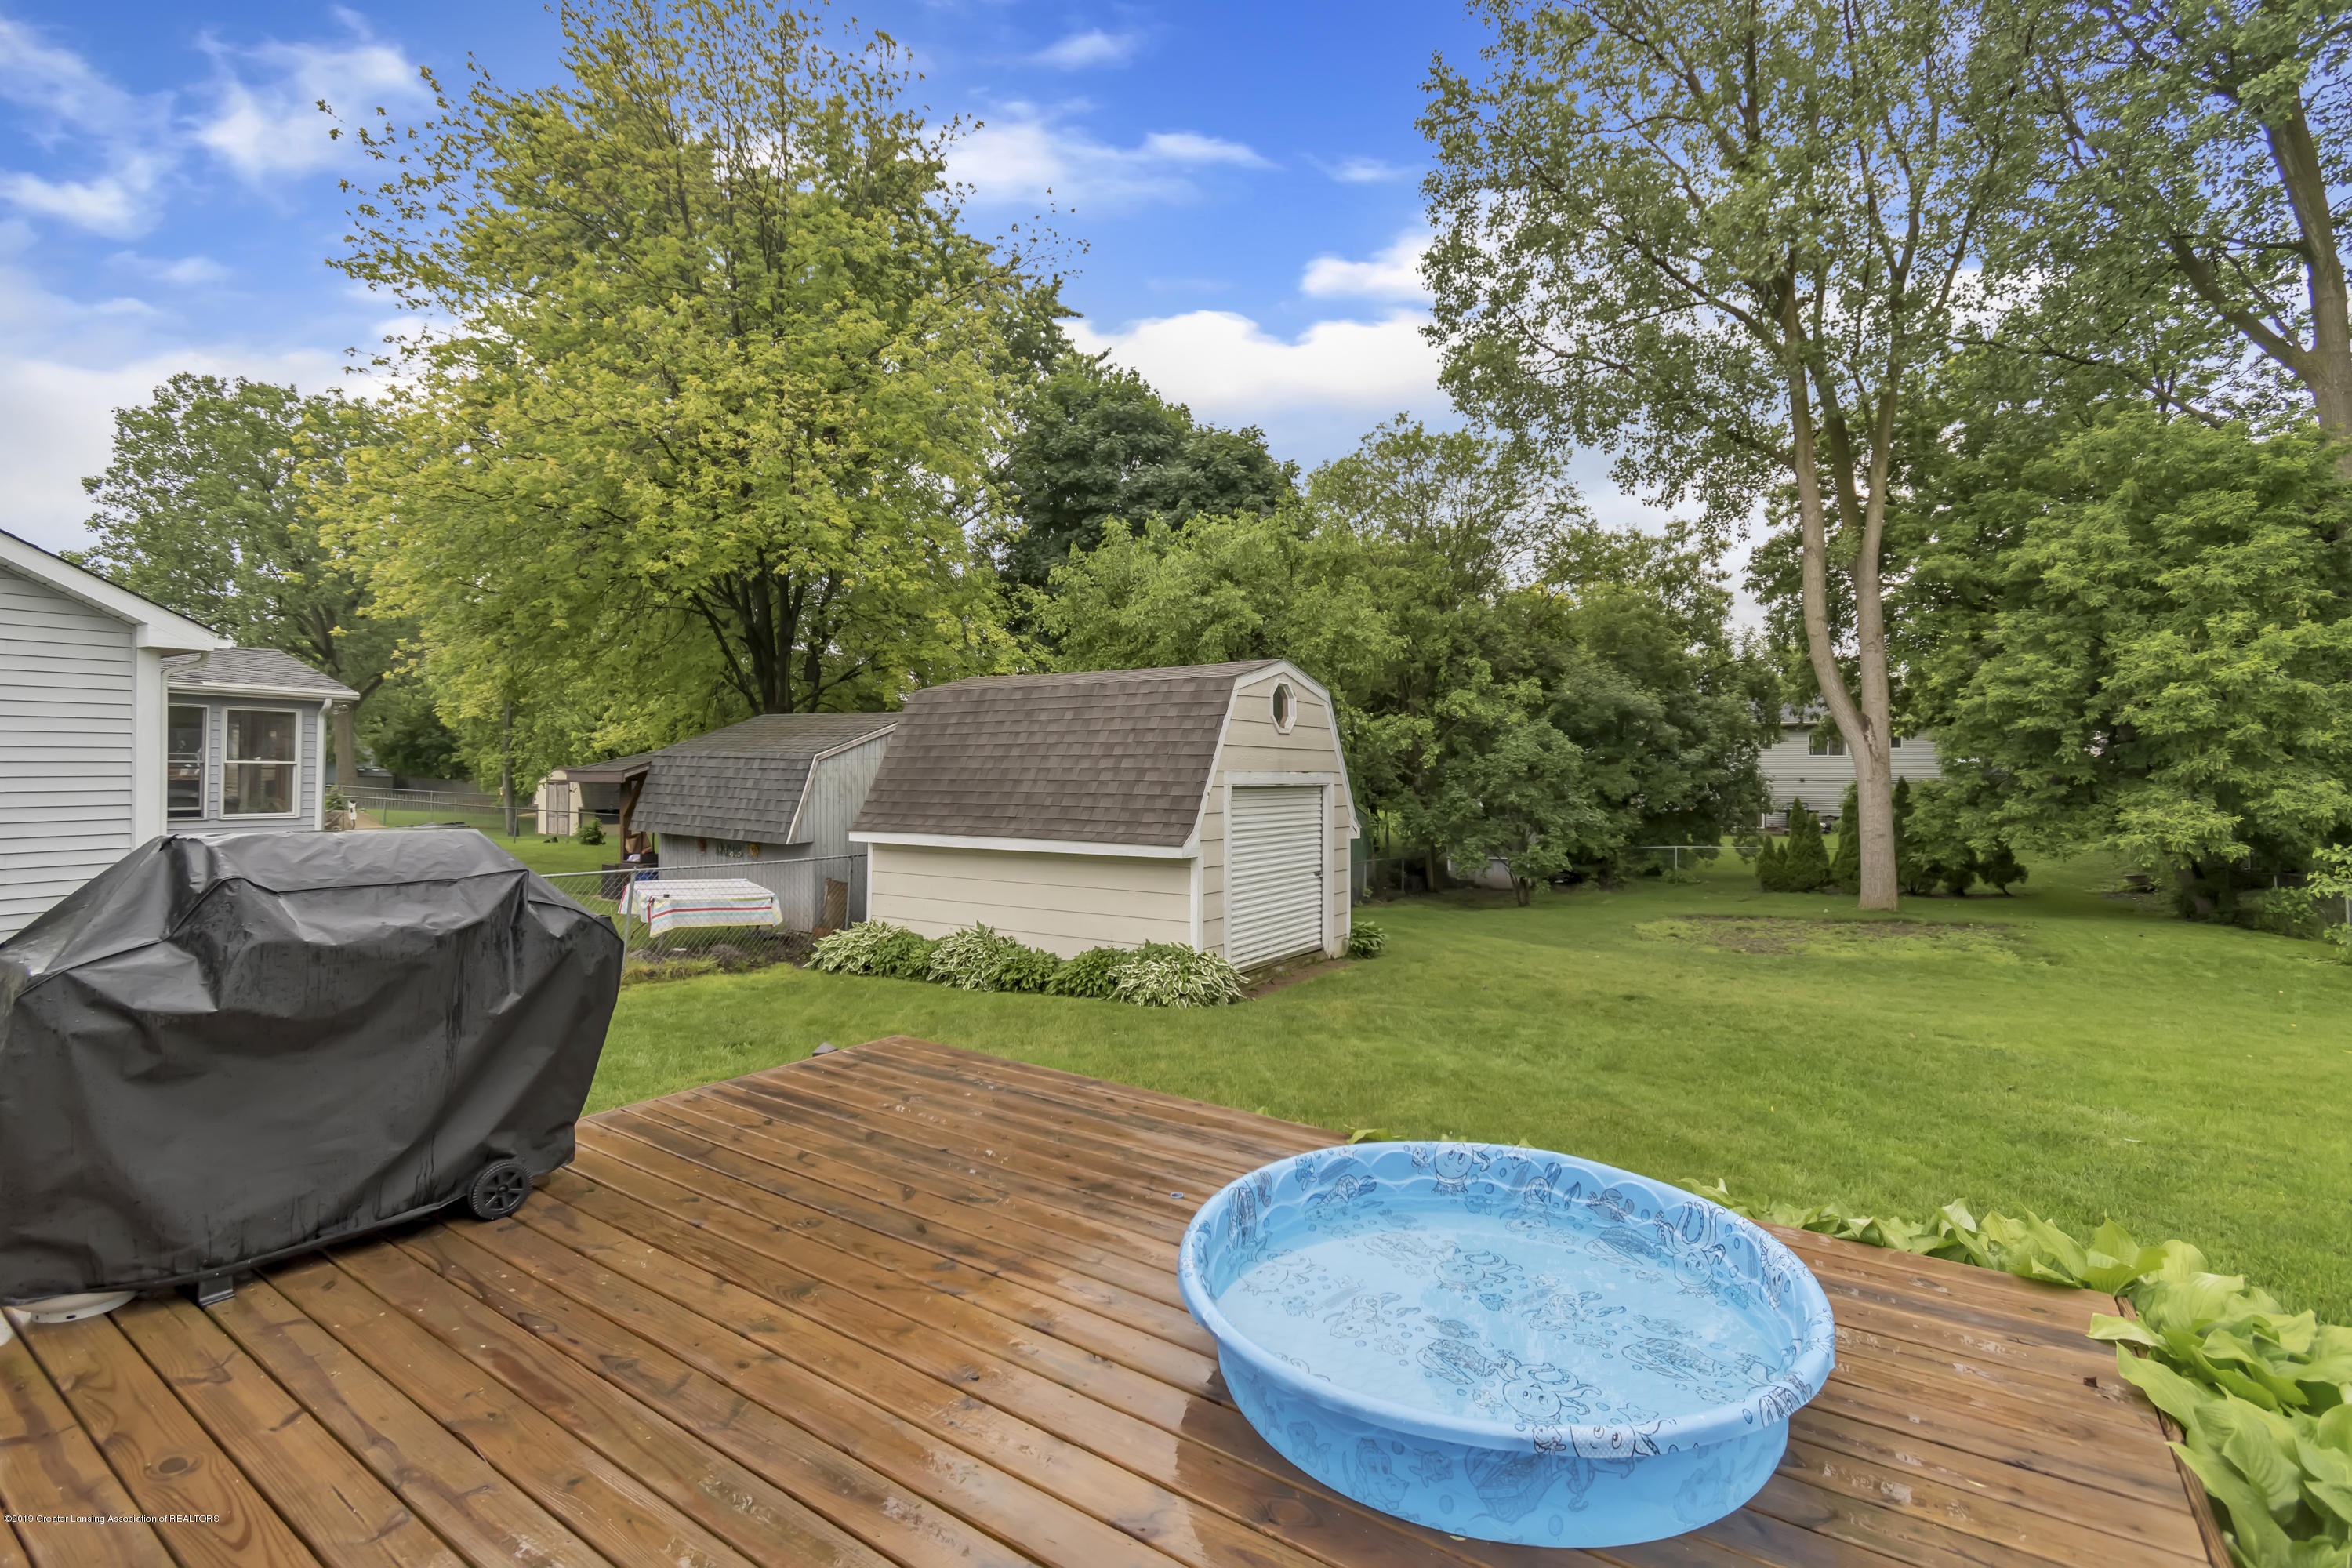 5736 Coulson Ct - 5736-Coulson-Ct-Lansing-MI-windowstill-4 - 41